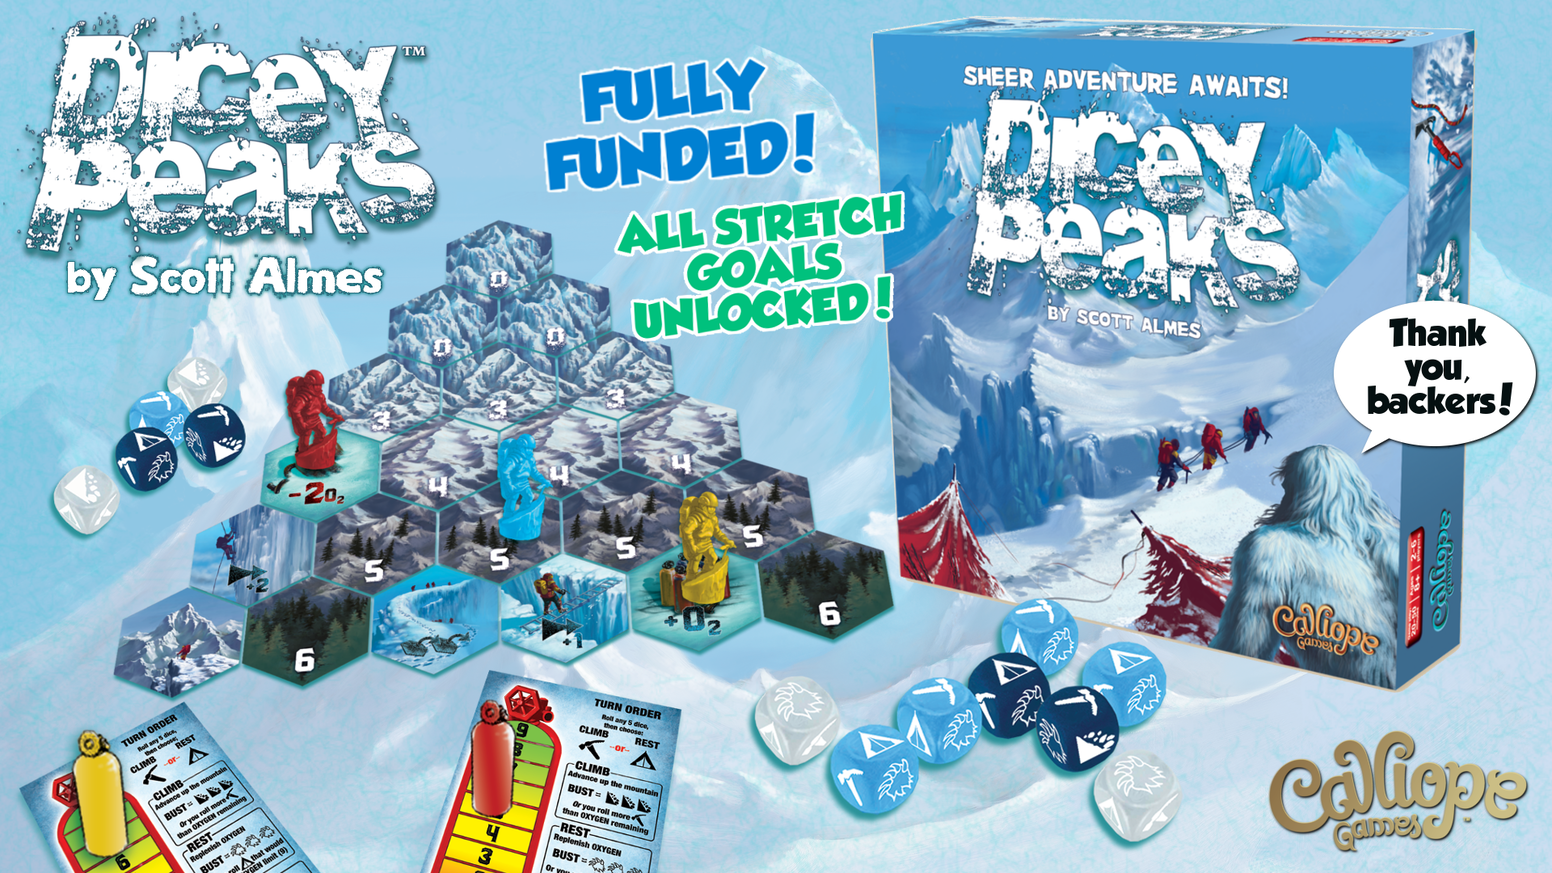 A push-your-luck adventure tabletop game for 2-6 players by Scott Almes, featuring a thrilling balance of strategy and luck!